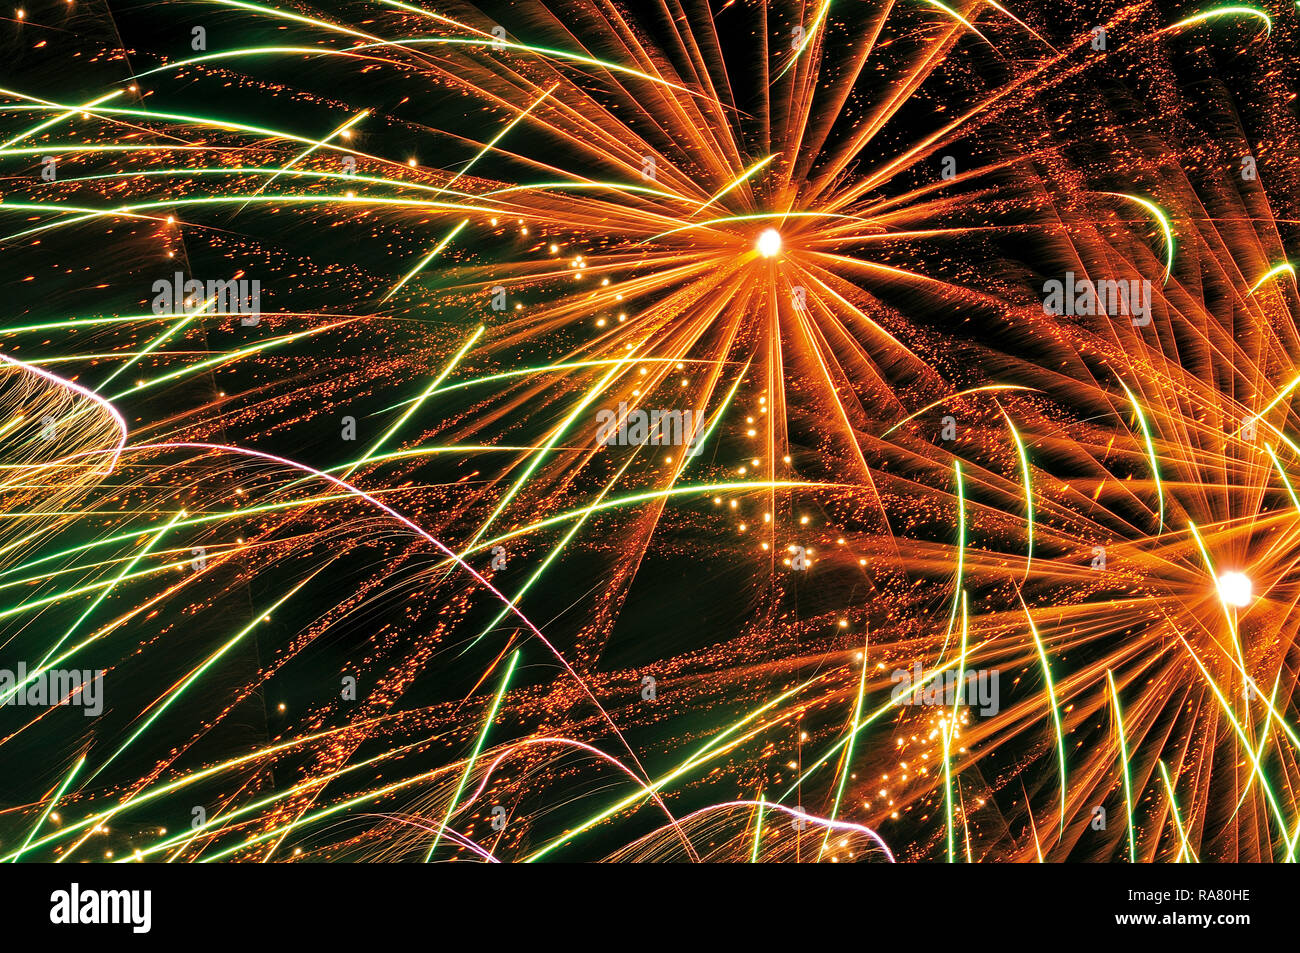 Colorful happy new year fireworks - Stock Image